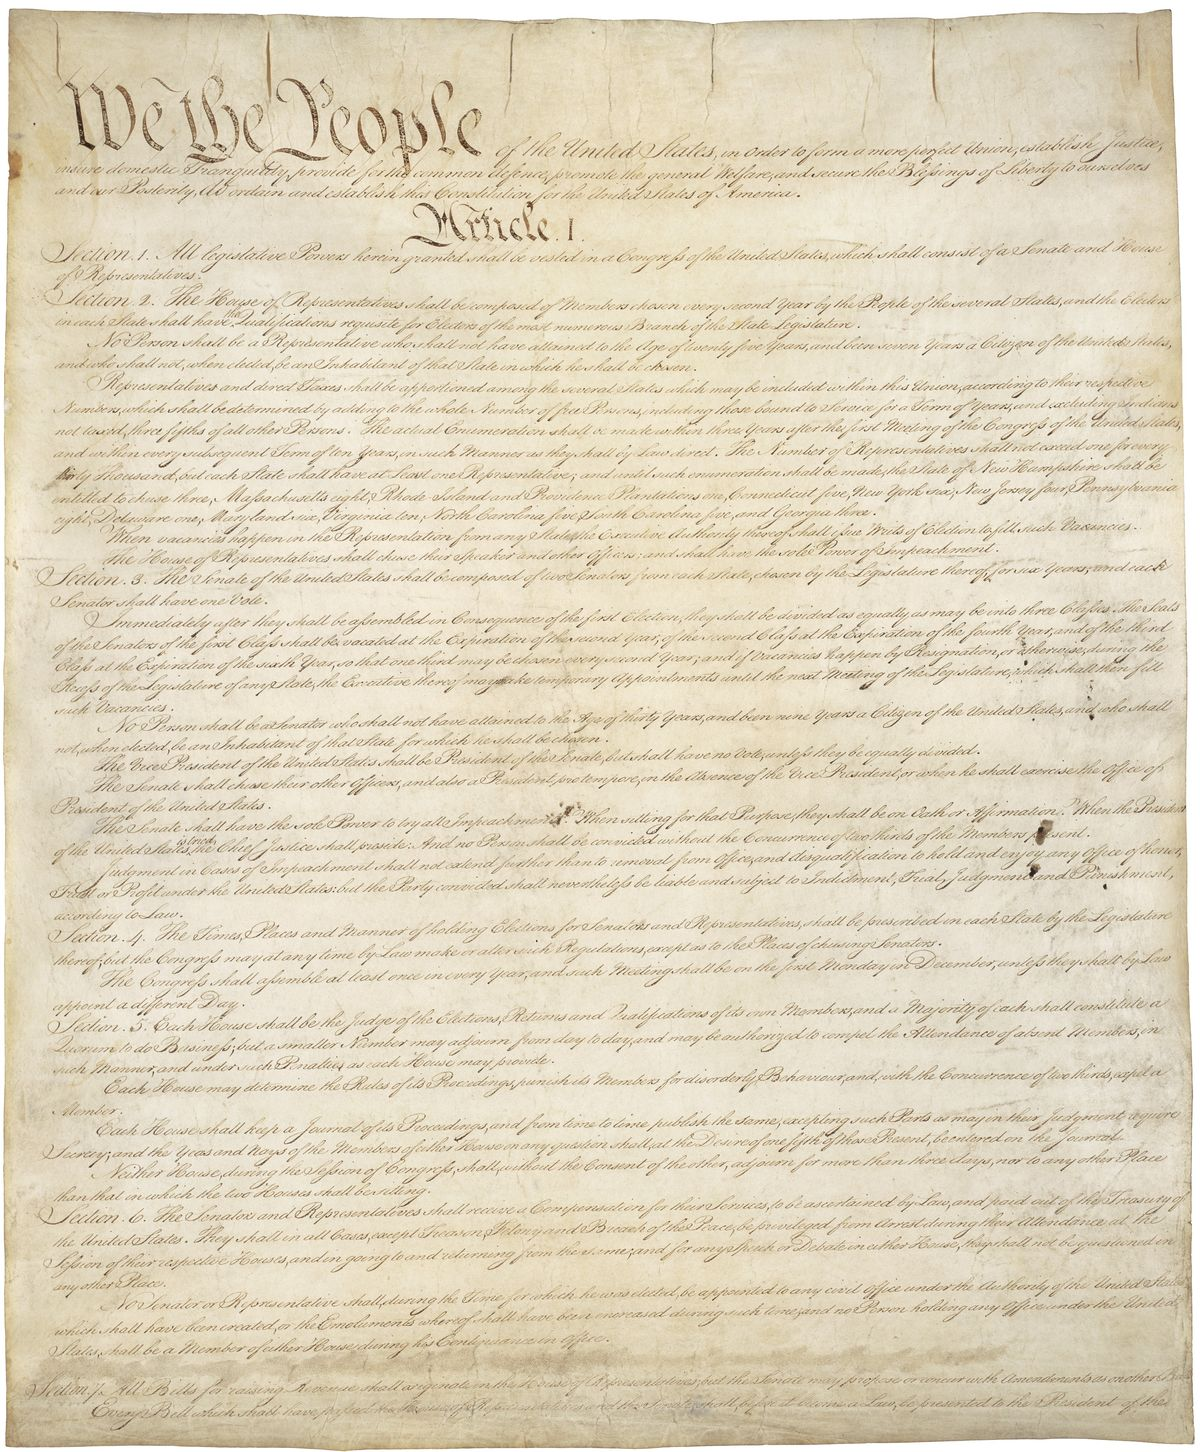 Page one of the original copy of the Constitution of the United States